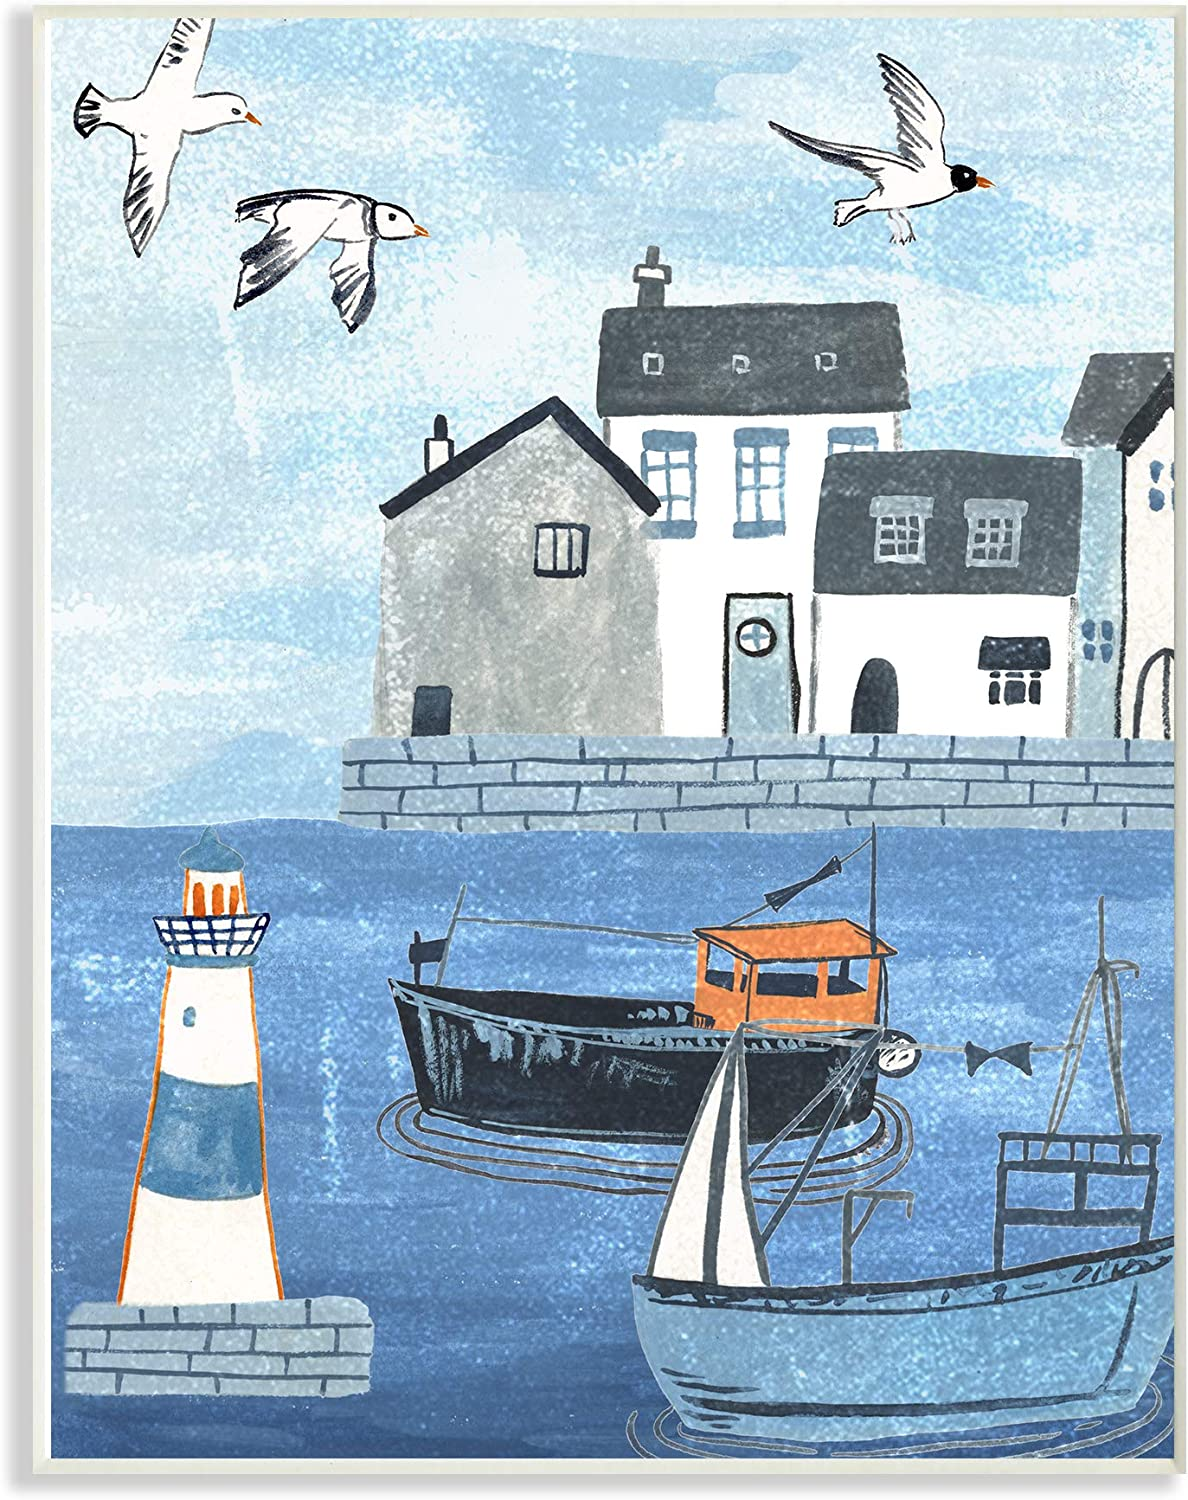 The Stupell Home Decor Lighthouse Seagulls Illustrated Dock Scene Wall Plaque Art, 13 x 19, Multi-Color